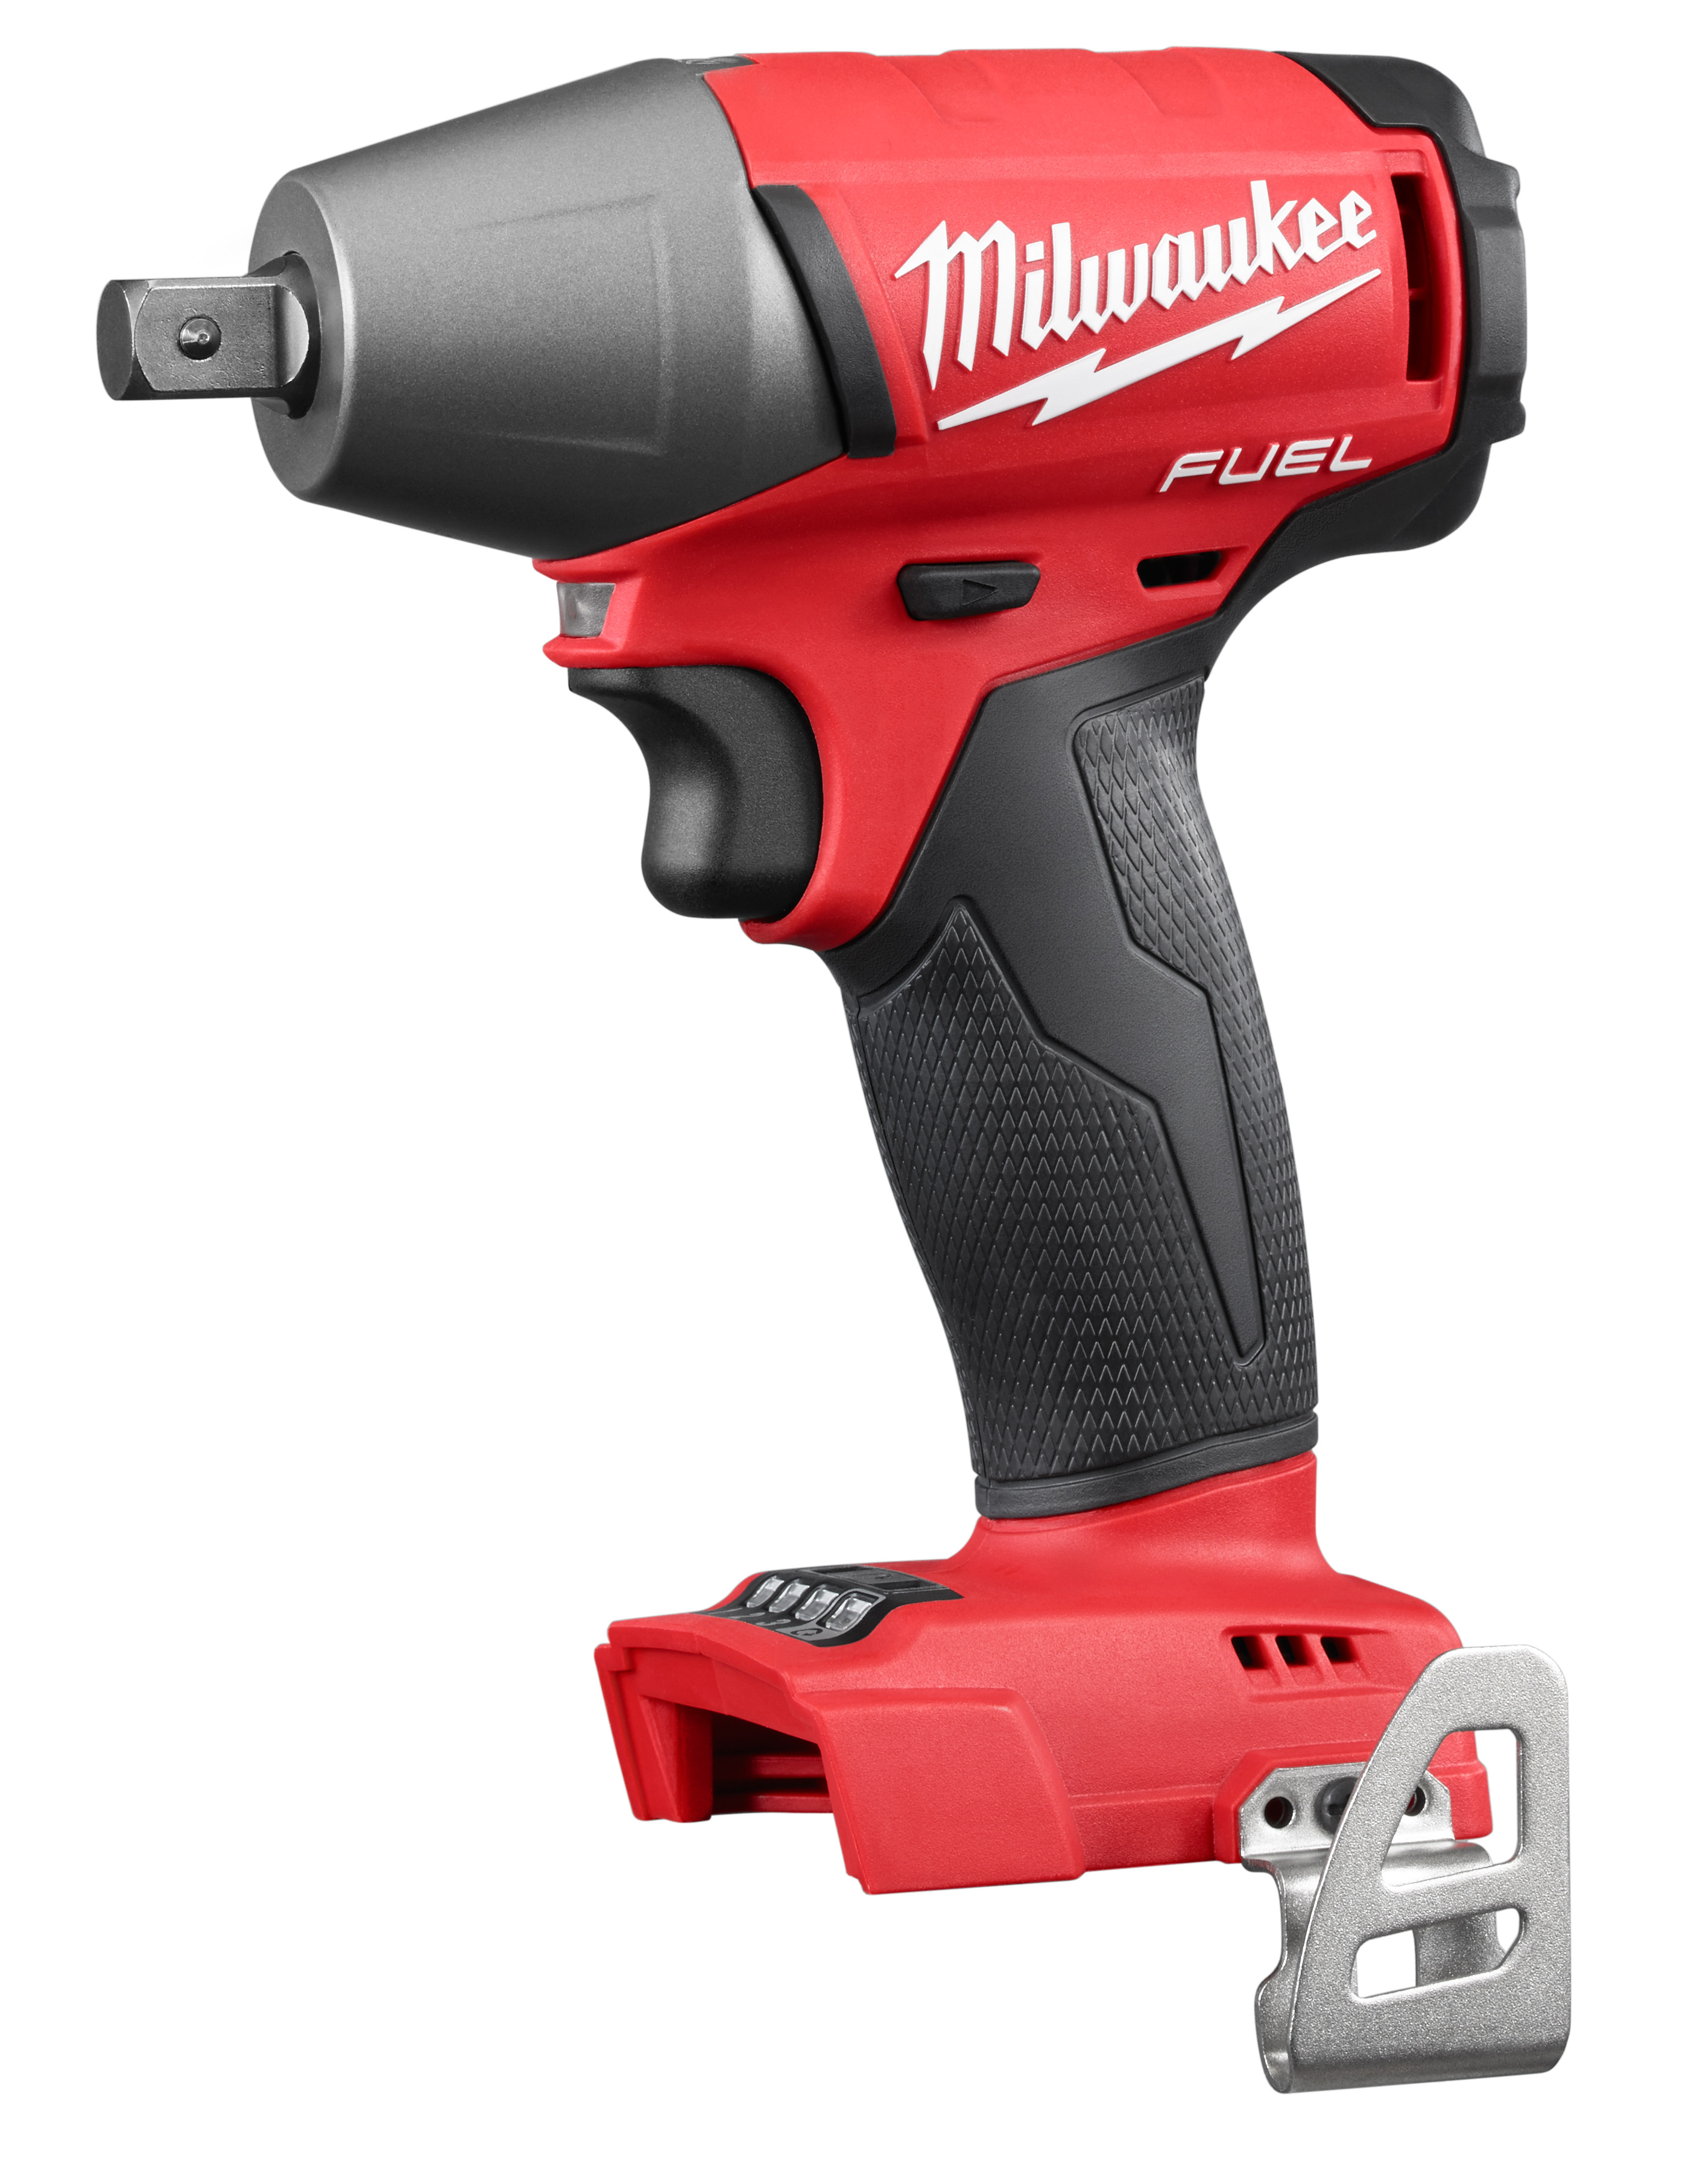 Milwaukee® M18™ FUEL™ 2755-20 Compact Cordless Impact Wrench With Pin Detent, 1/2 in Straight Drive, 0 to 3200 bpm, 220 ft-lb Torque, 18 VDC, 6 in OAL